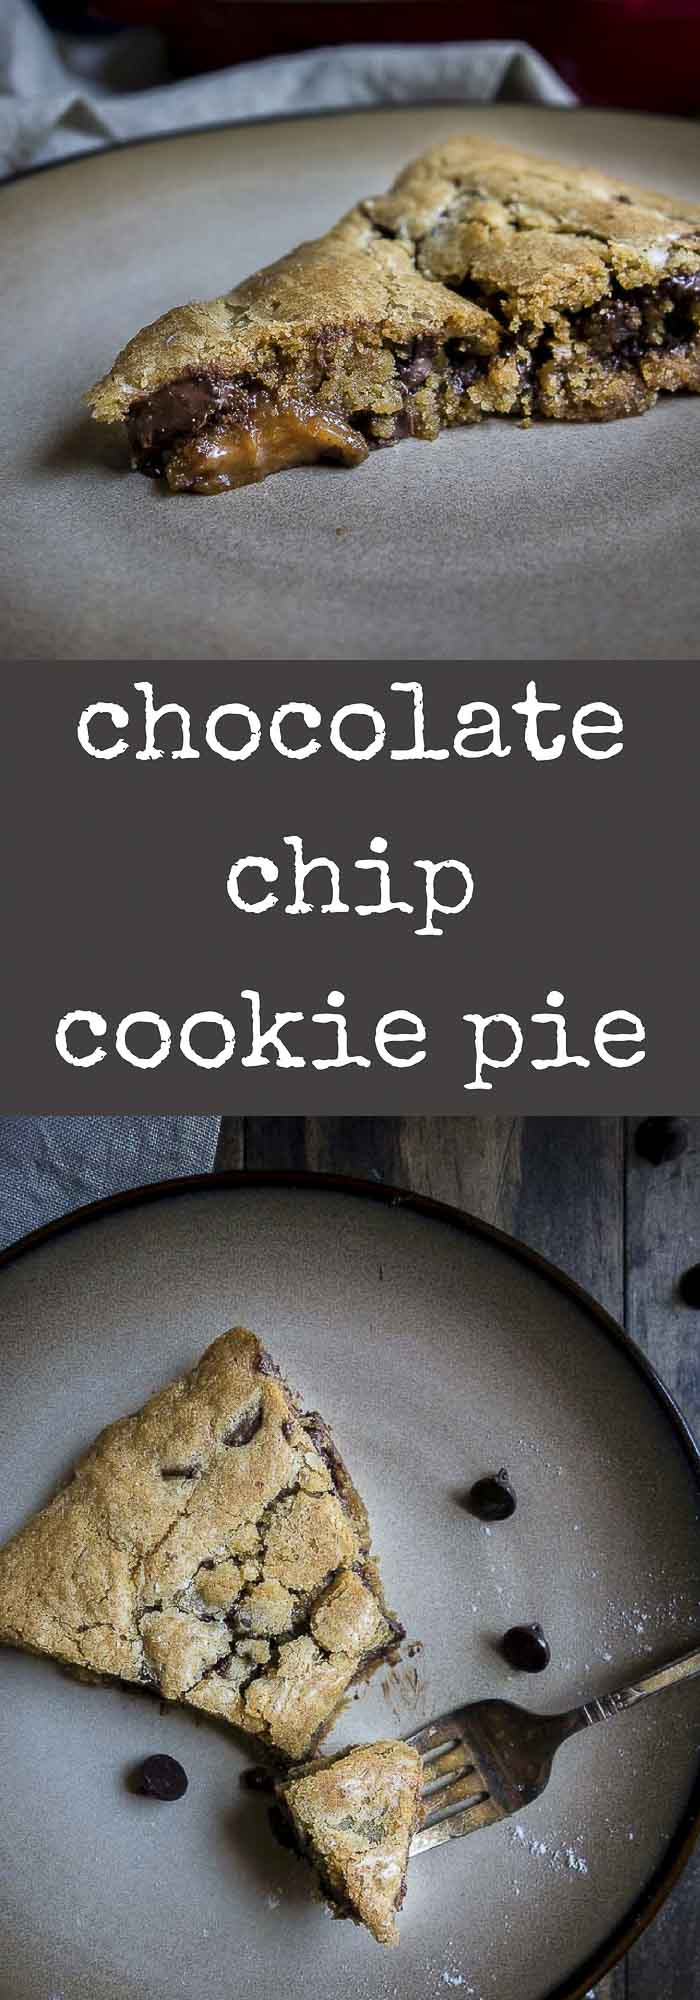 This deep dish chocolate chip cookie pie is sooooo easy to make, filled with dark chocolate & caramel, sprinkled with sea salt, & baked to chewy perfection.deep dish cookie pie | skillet cookie | chocolate chip cookie pizza | chocolate chip cookie | salted caramel cookie | pizookie skillet | chocolate chip cookie with caramel | skillet desserts | easy cookies